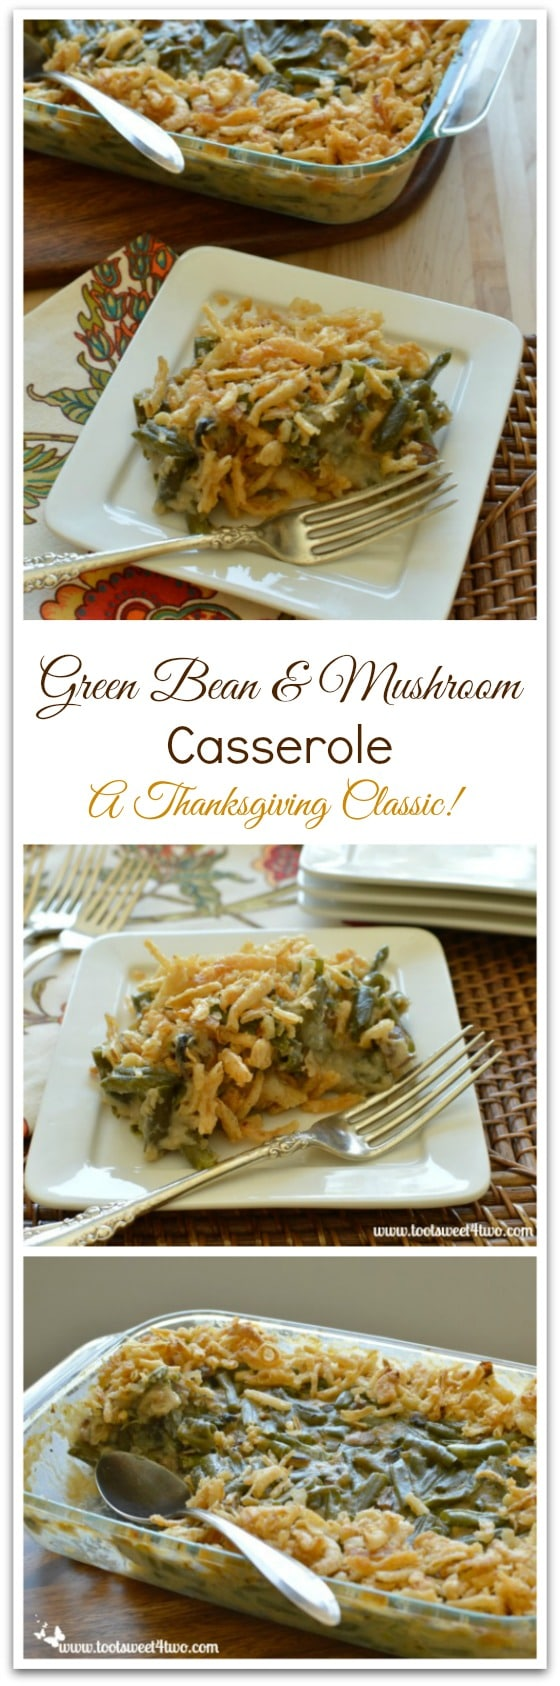 Green Bean and Mushroom Casserole collage